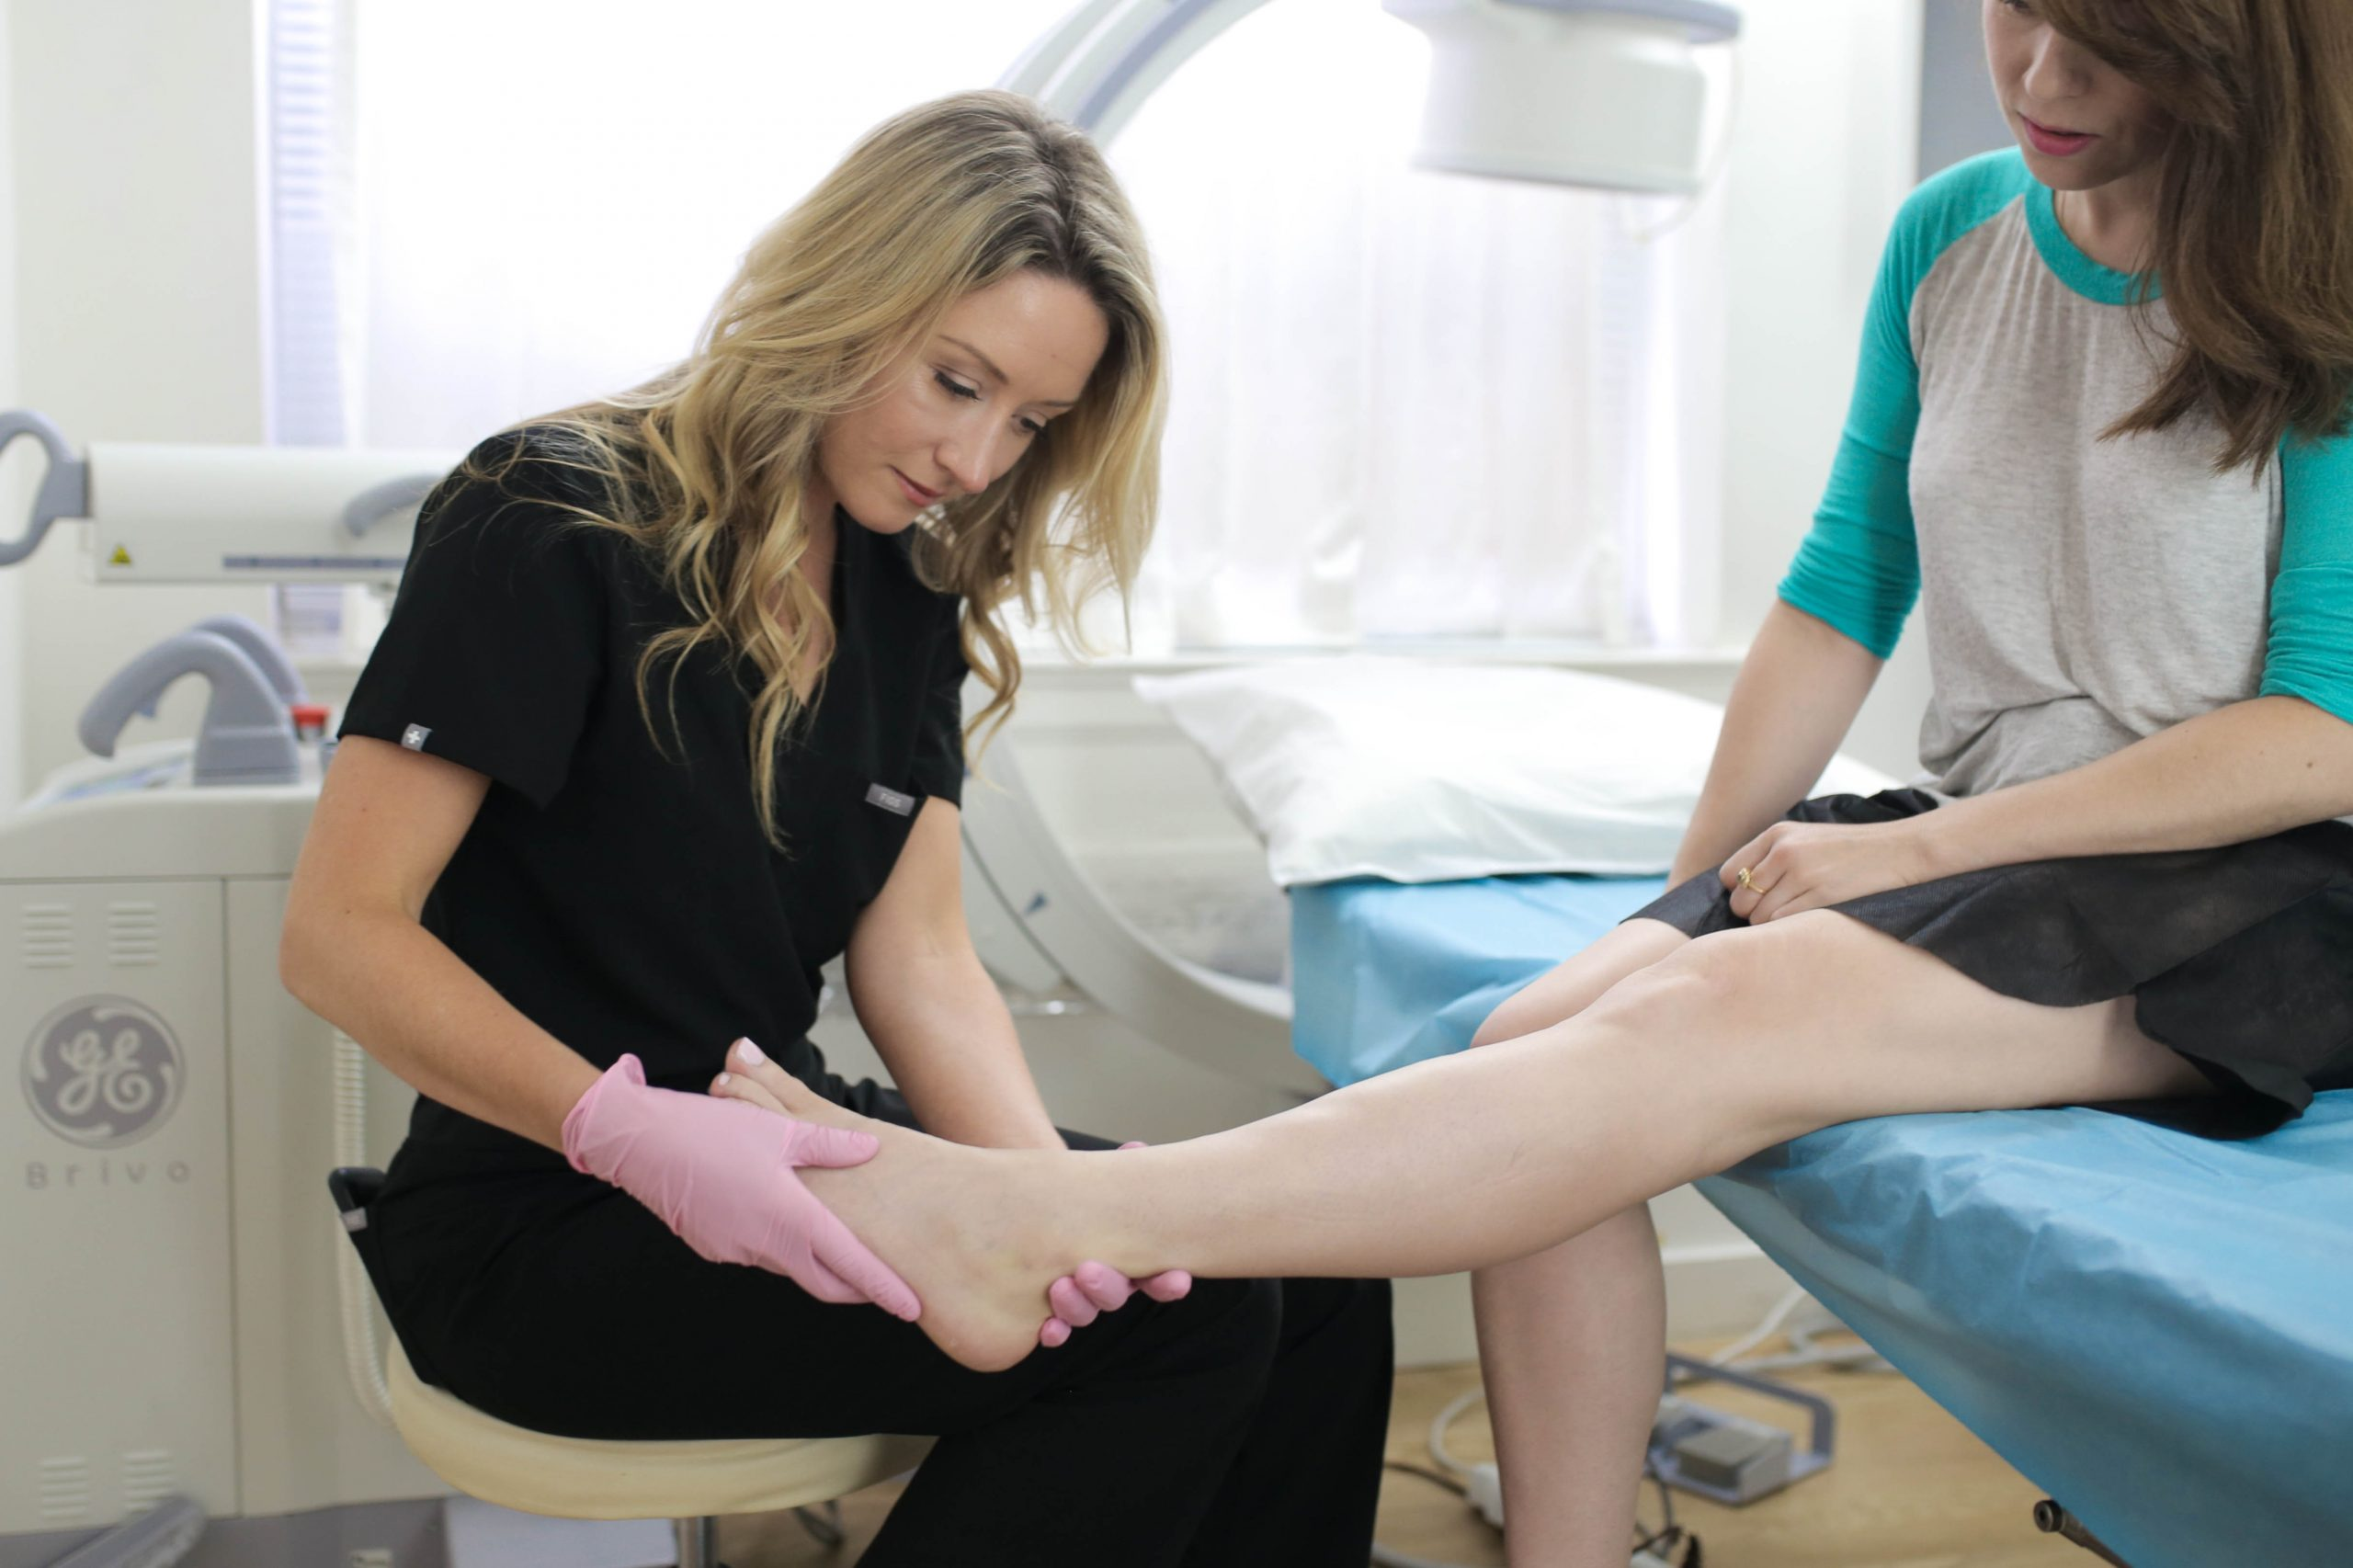 Are you looking for the best vein doctor near Smithtown? This article provides a comprehensive guide to finding the best vein doctors near Smithtown, NY.